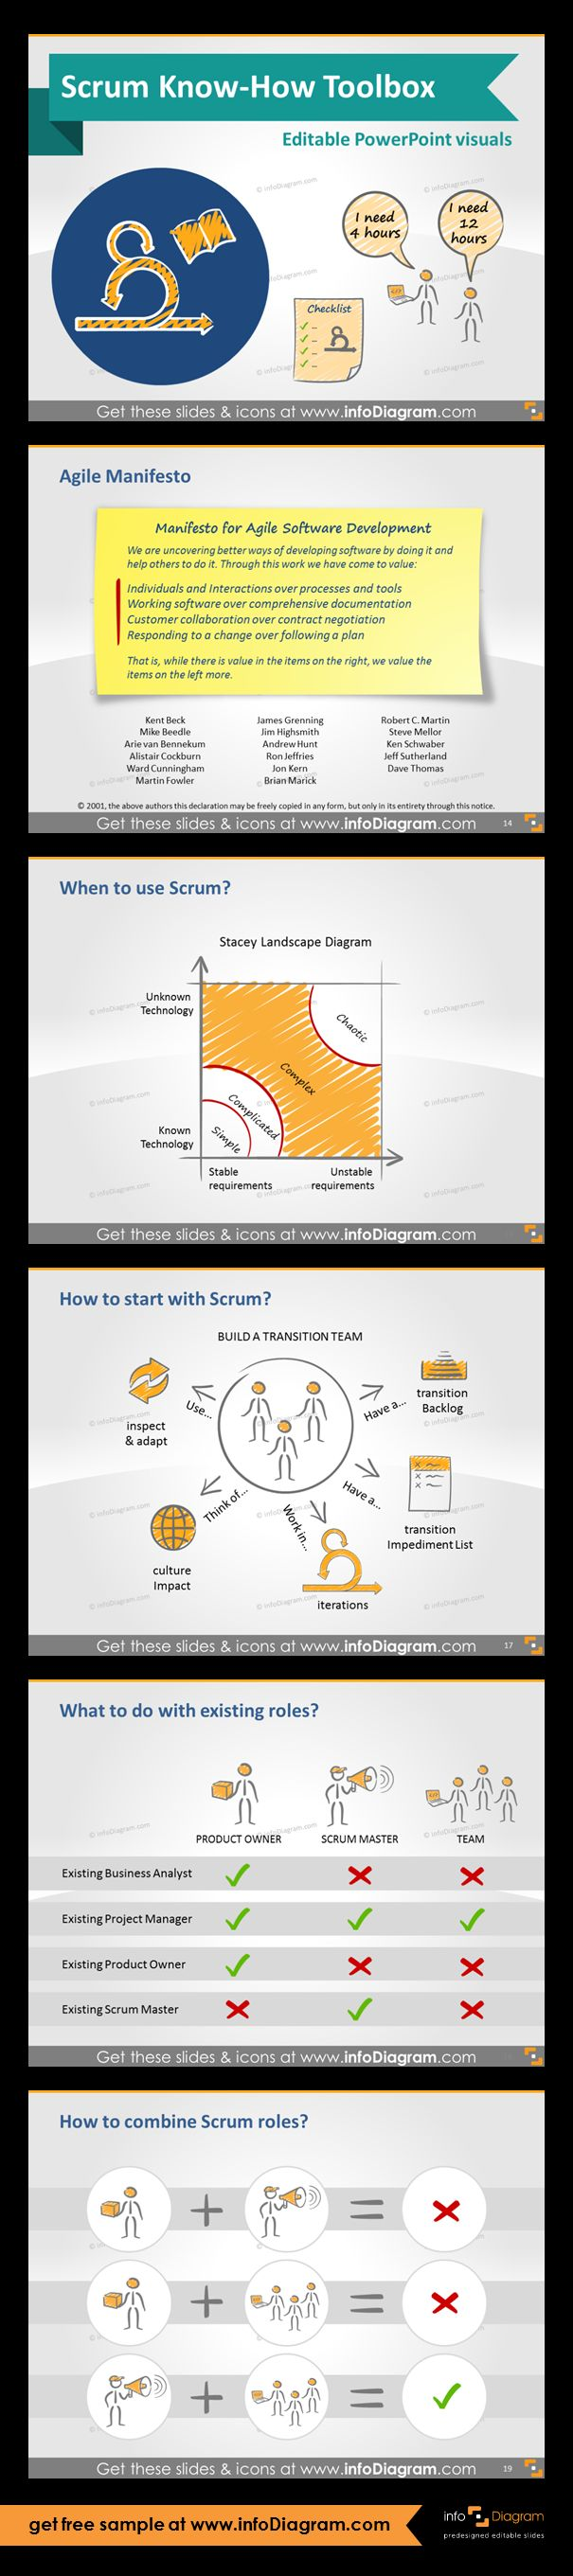 Scrum Know-How Presentation Visuals for Powerpoint. Agile Manifesto. When to use Scrum - Stacey Matrix. Advanced Scrum knowledge: Scrum guide - how to start with scrum? Slide icons: Transition Backlog, Transition Impediment List, Iterations, Culture impact, Inspect & adept. Existing roles for Scrum management. Learn how to combine Scrum roles. Create checklist before start: agreed roles, needed infrastructure, right pilot, common understanding, cross functional team.